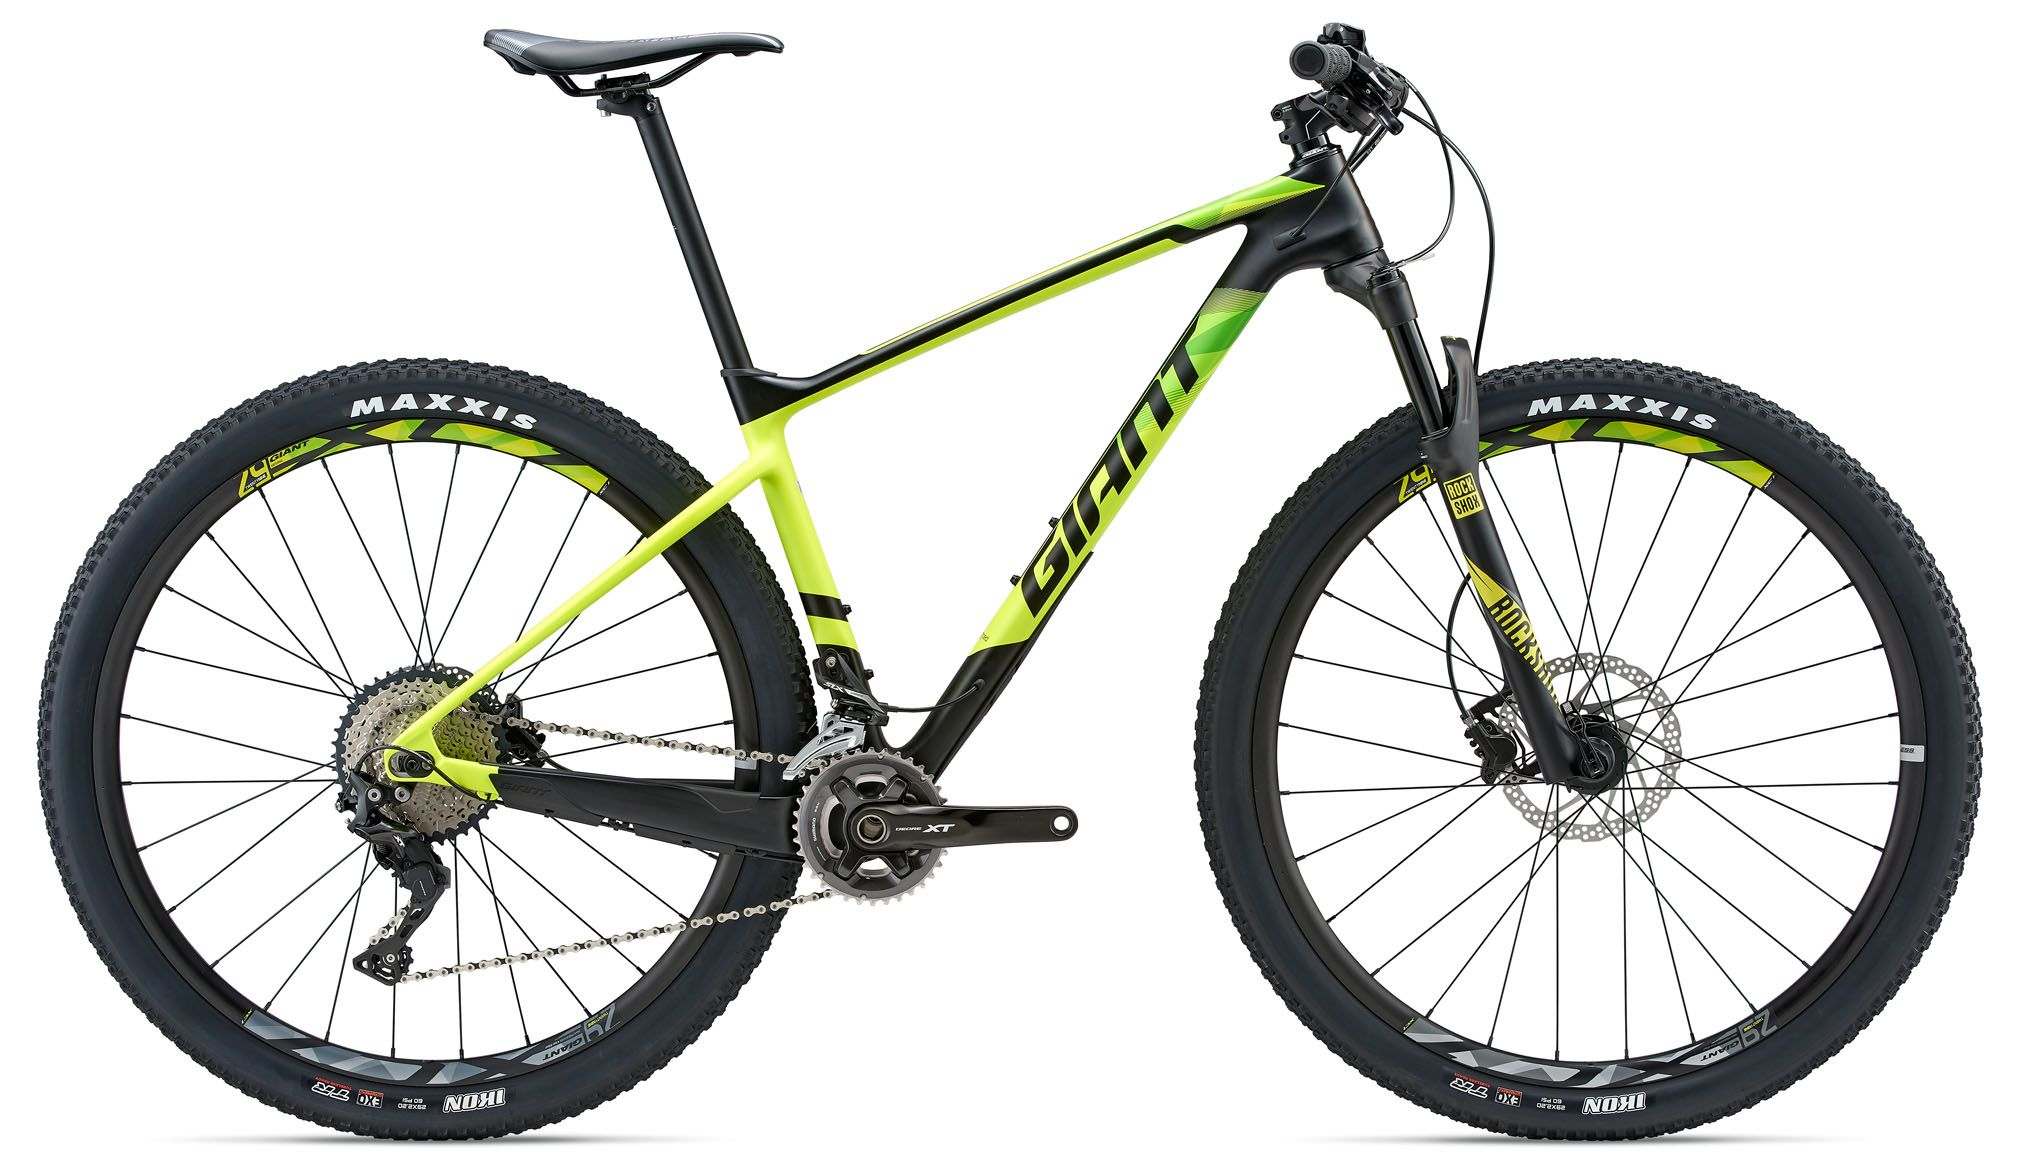 Велосипед Giant XTC Advanced 29er 2 GE 2018 велосипед giant xtc advanced 27 5 2 2016